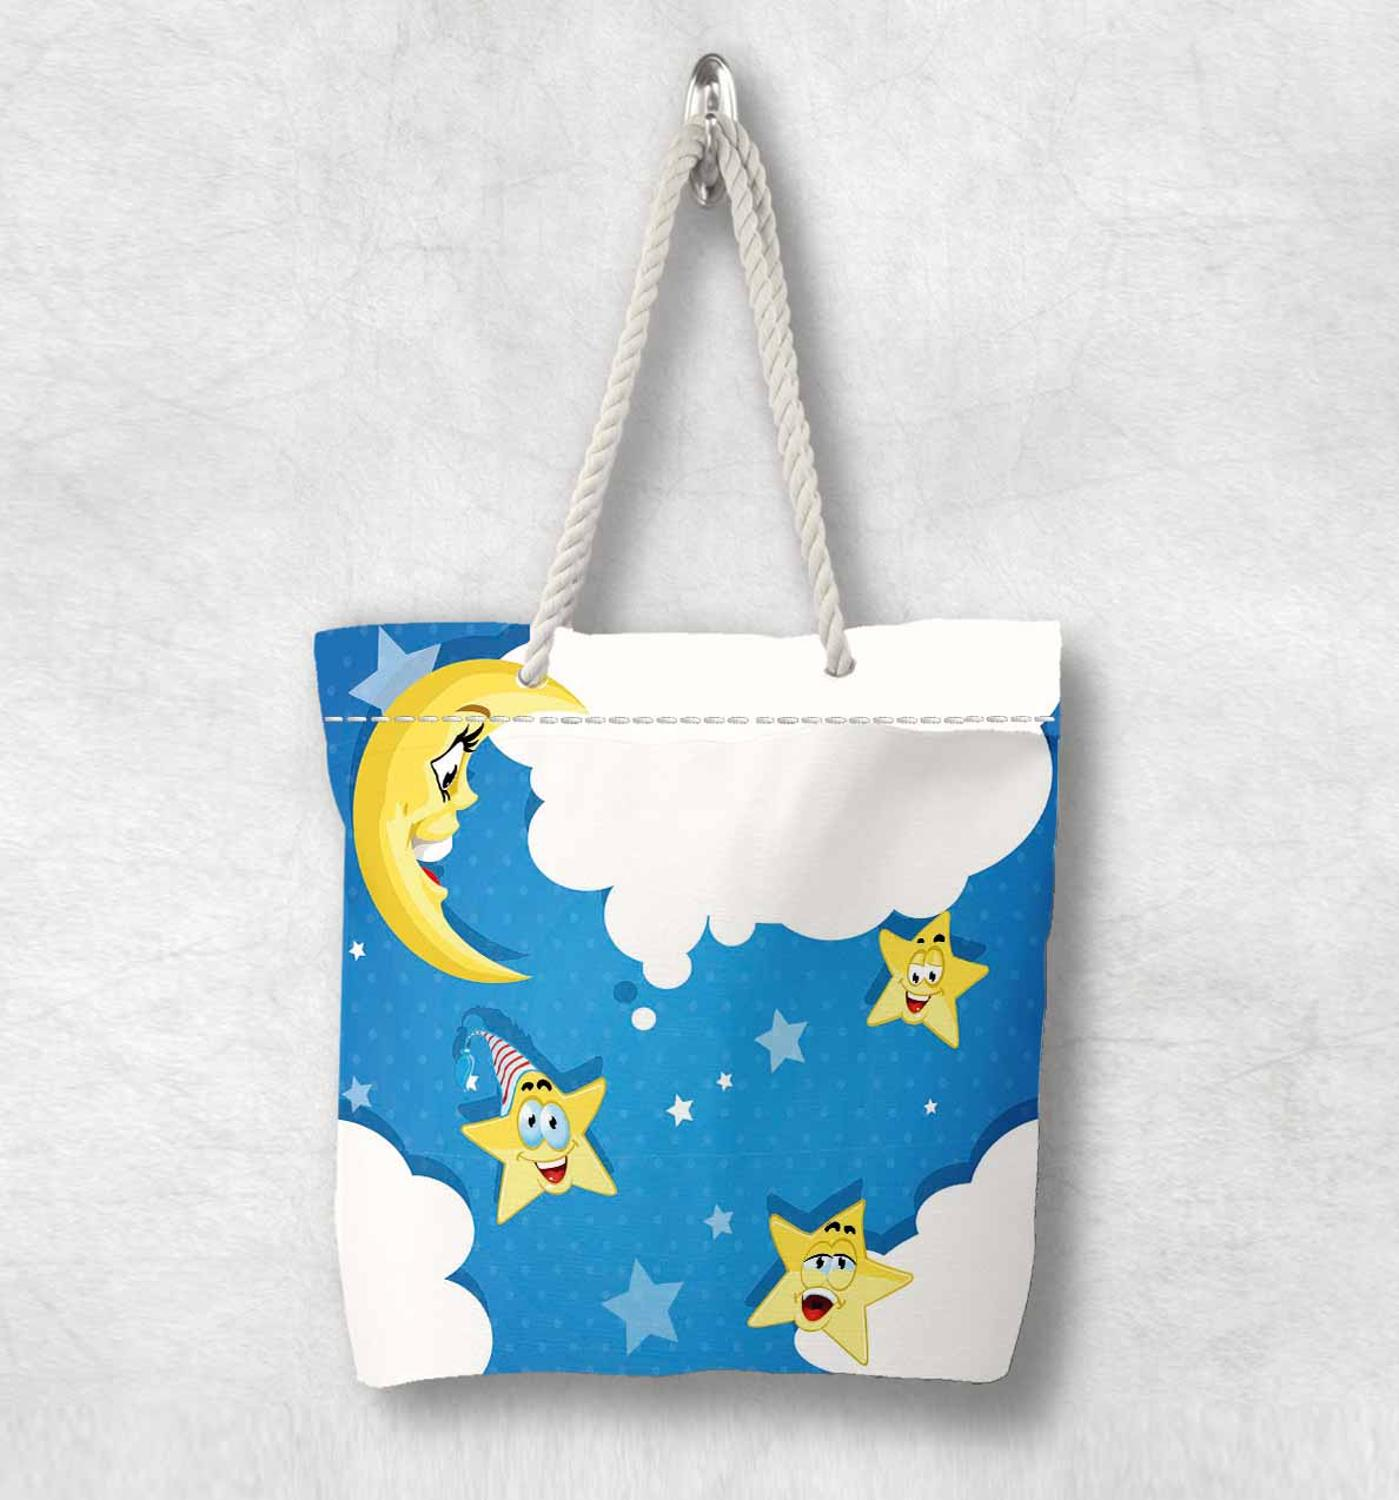 Else Blue Sky White Clouds Yellow Stars Moon Fashion White Rope Handle Canvas Bag  Cartoon Print Zippered Tote Bag Shoulder Bag